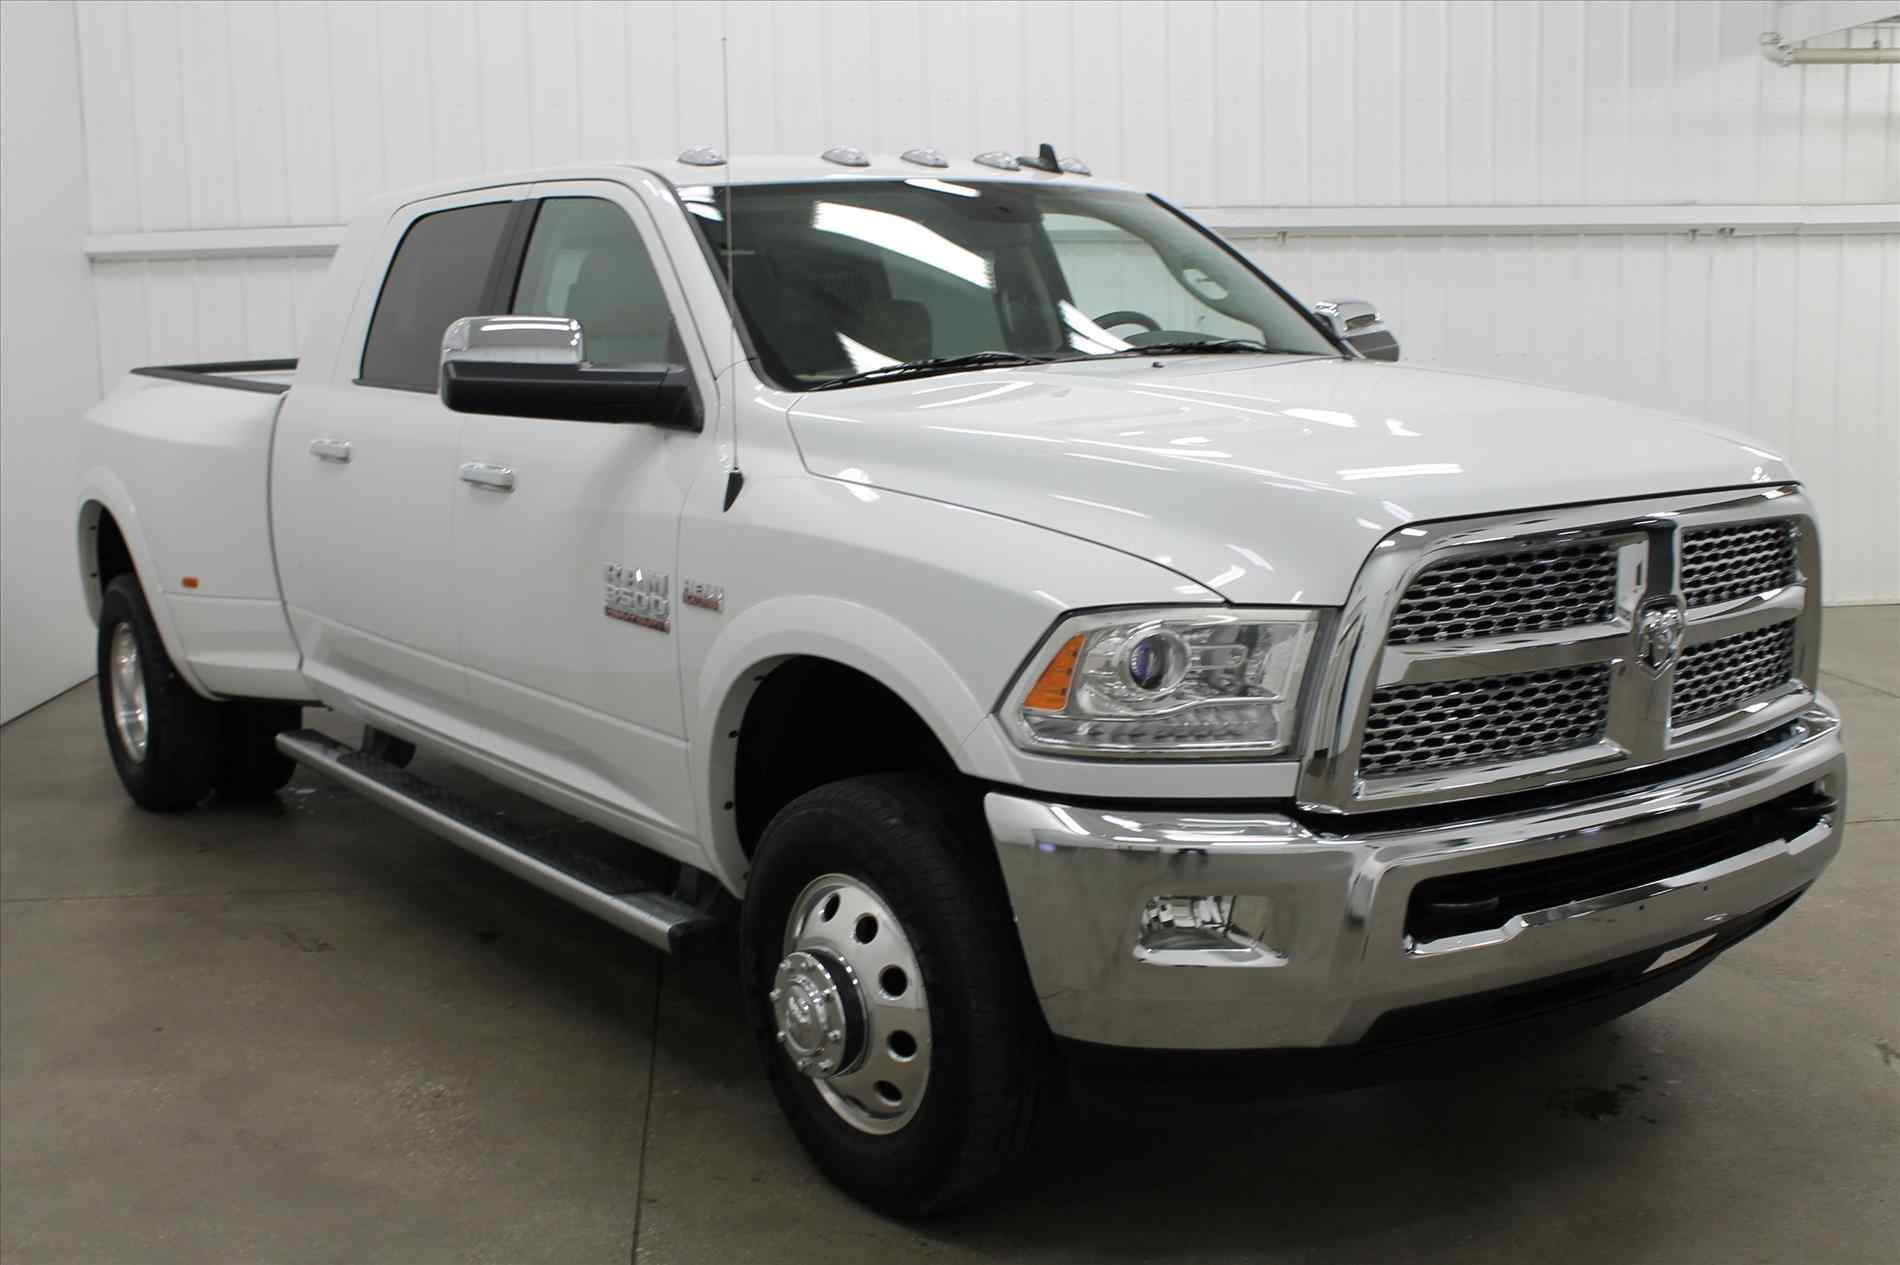 best trucks for sale by owner near me truck resourcerhftinfo marycathinhmarycathinfo marycathinhmarycathinfo trucks for sale by